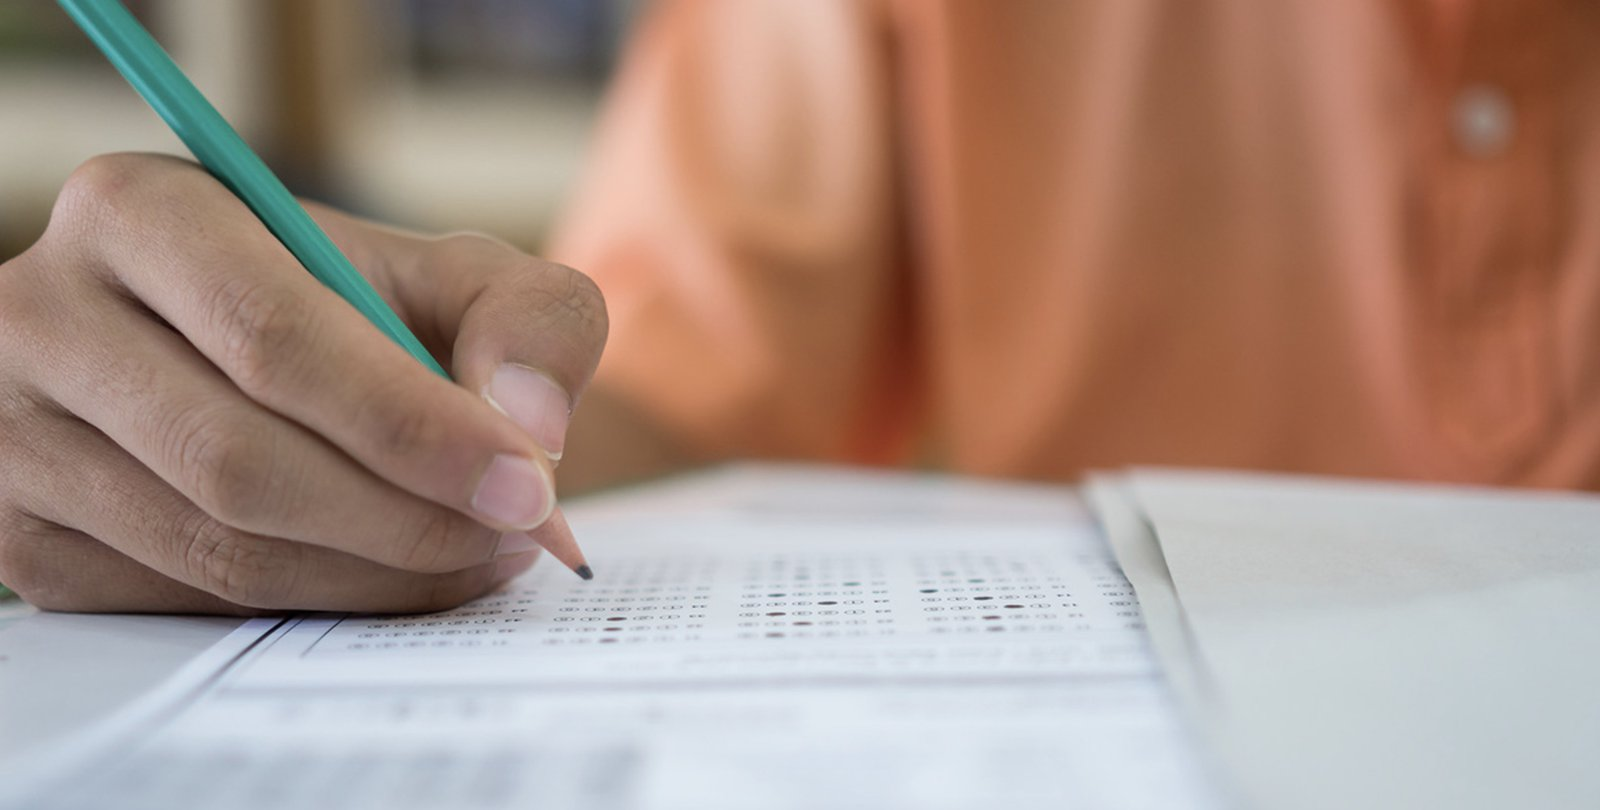 A hand holding pencil fills out a standardized test